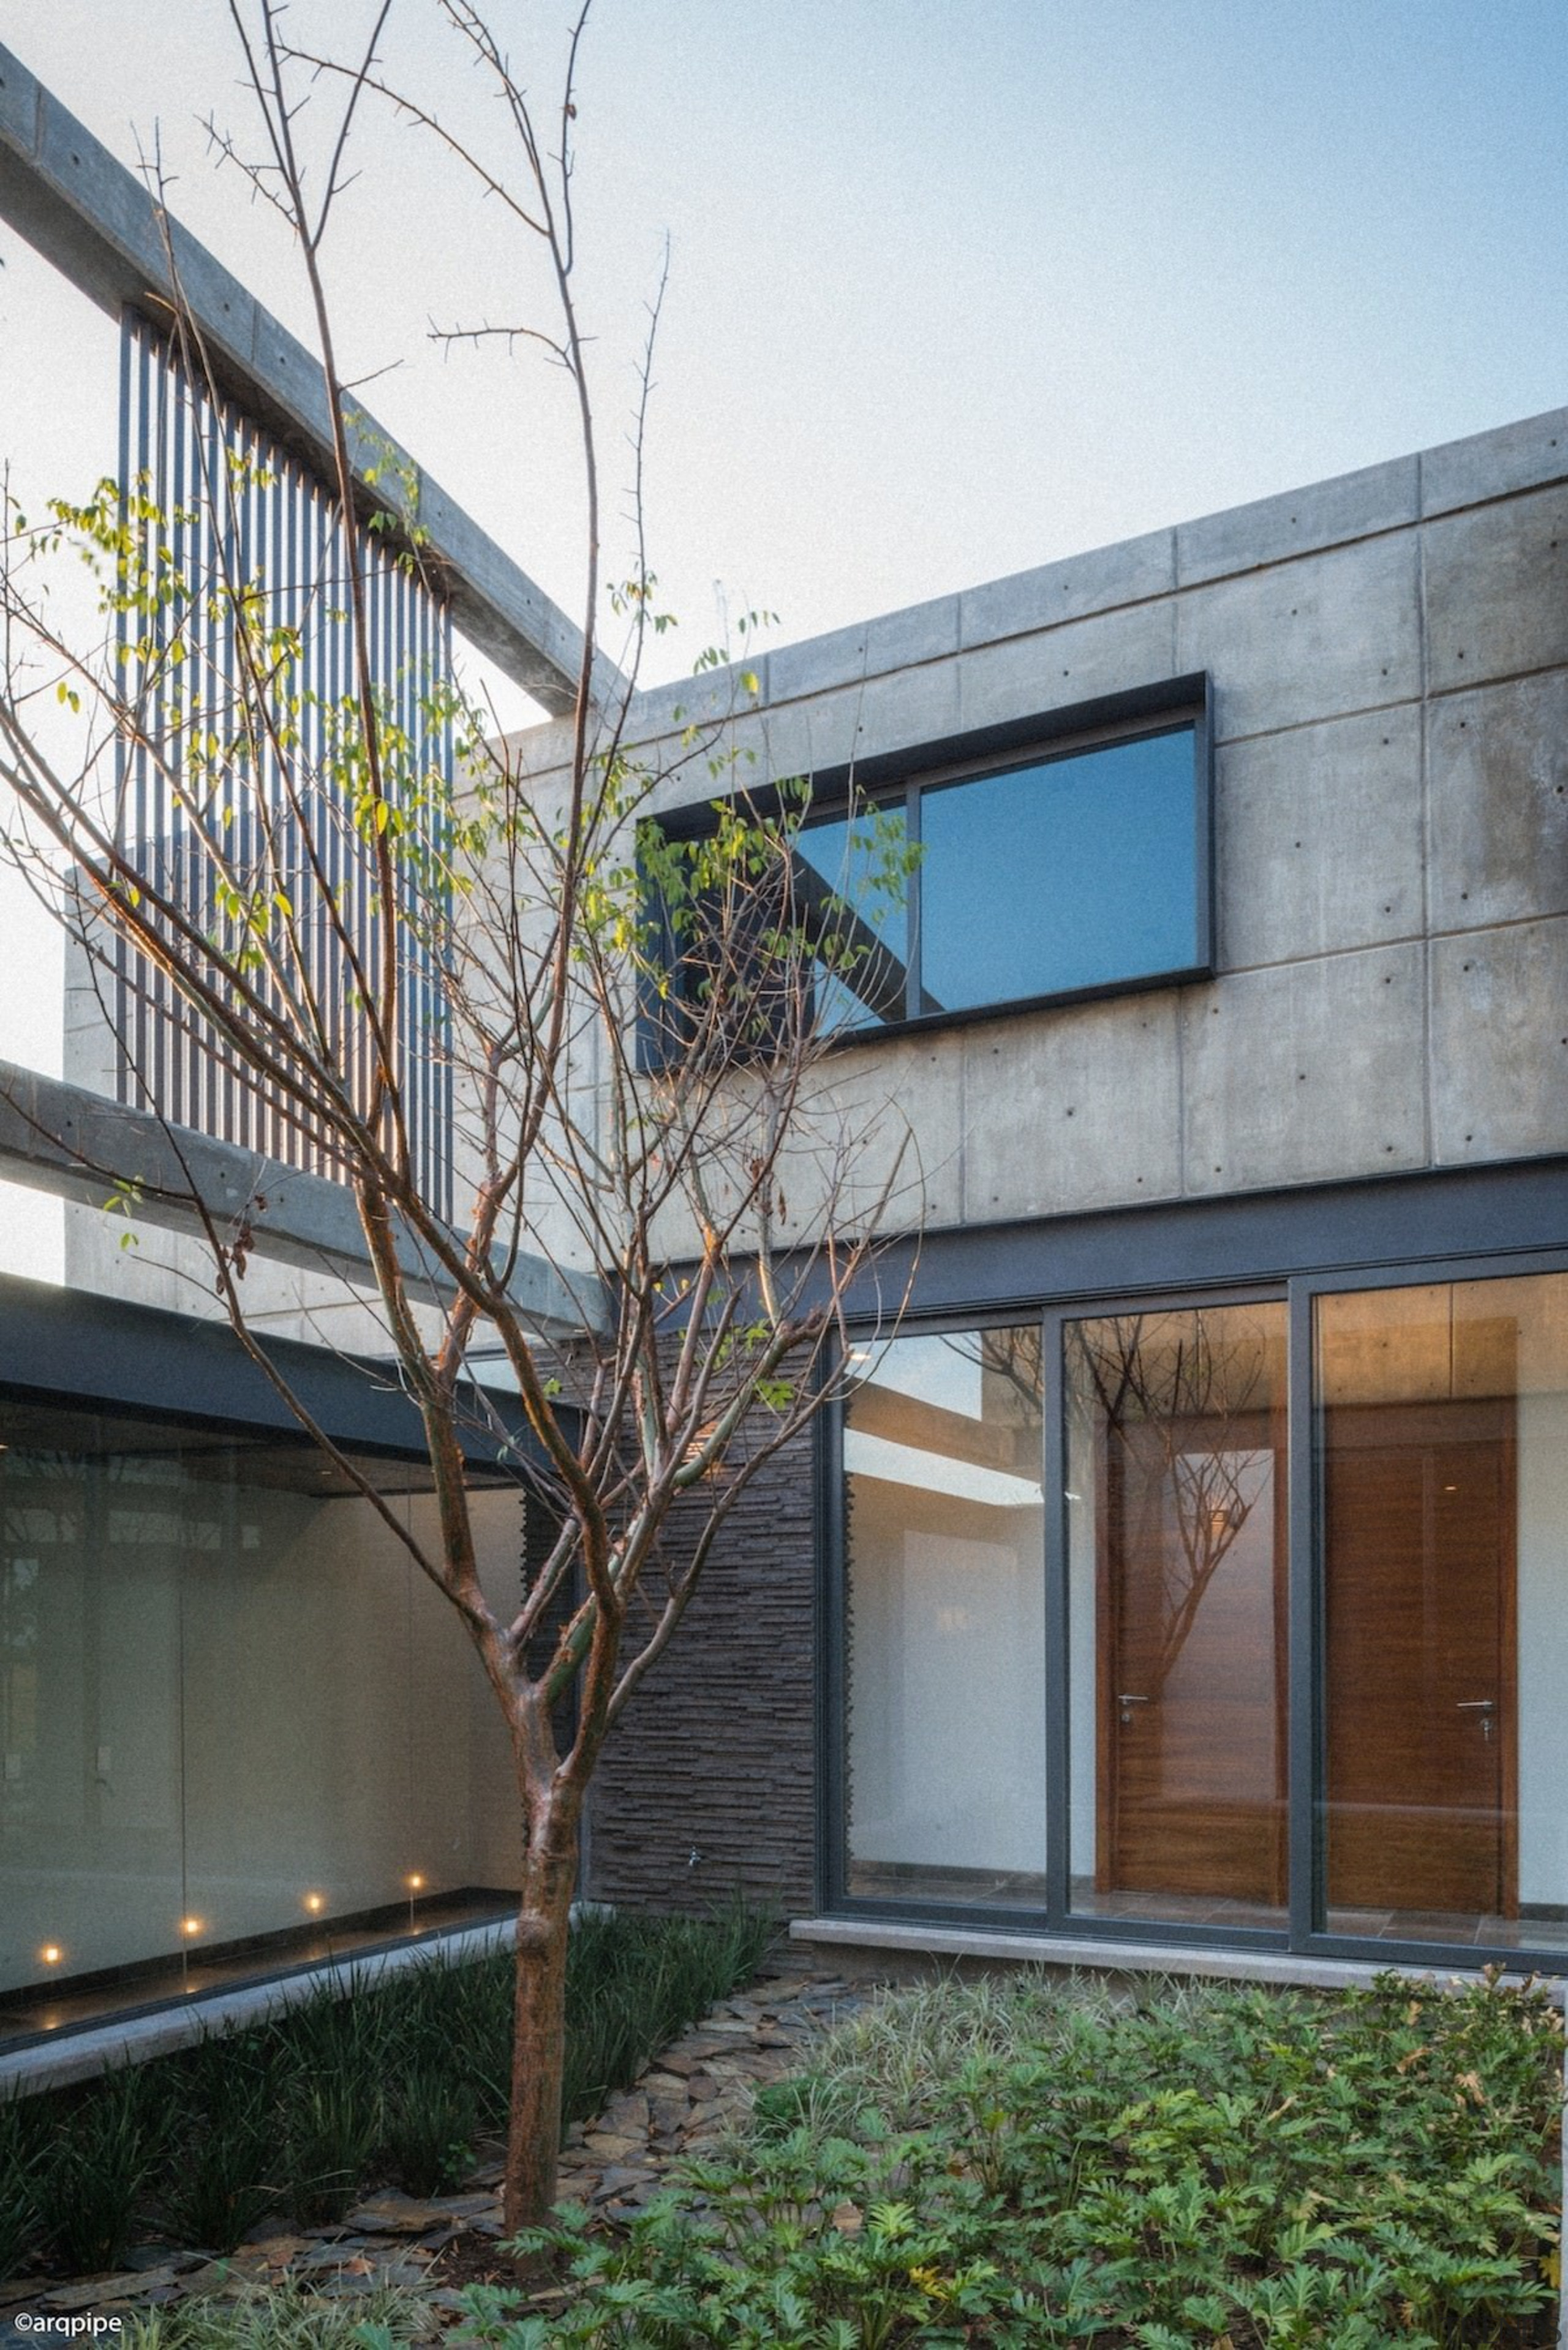 Colima home/Di Frenna Arquitectos - Colima home/Di Frenna architecture, building, daylighting, facade, home, house, property, real estate, residential area, window, white, gray